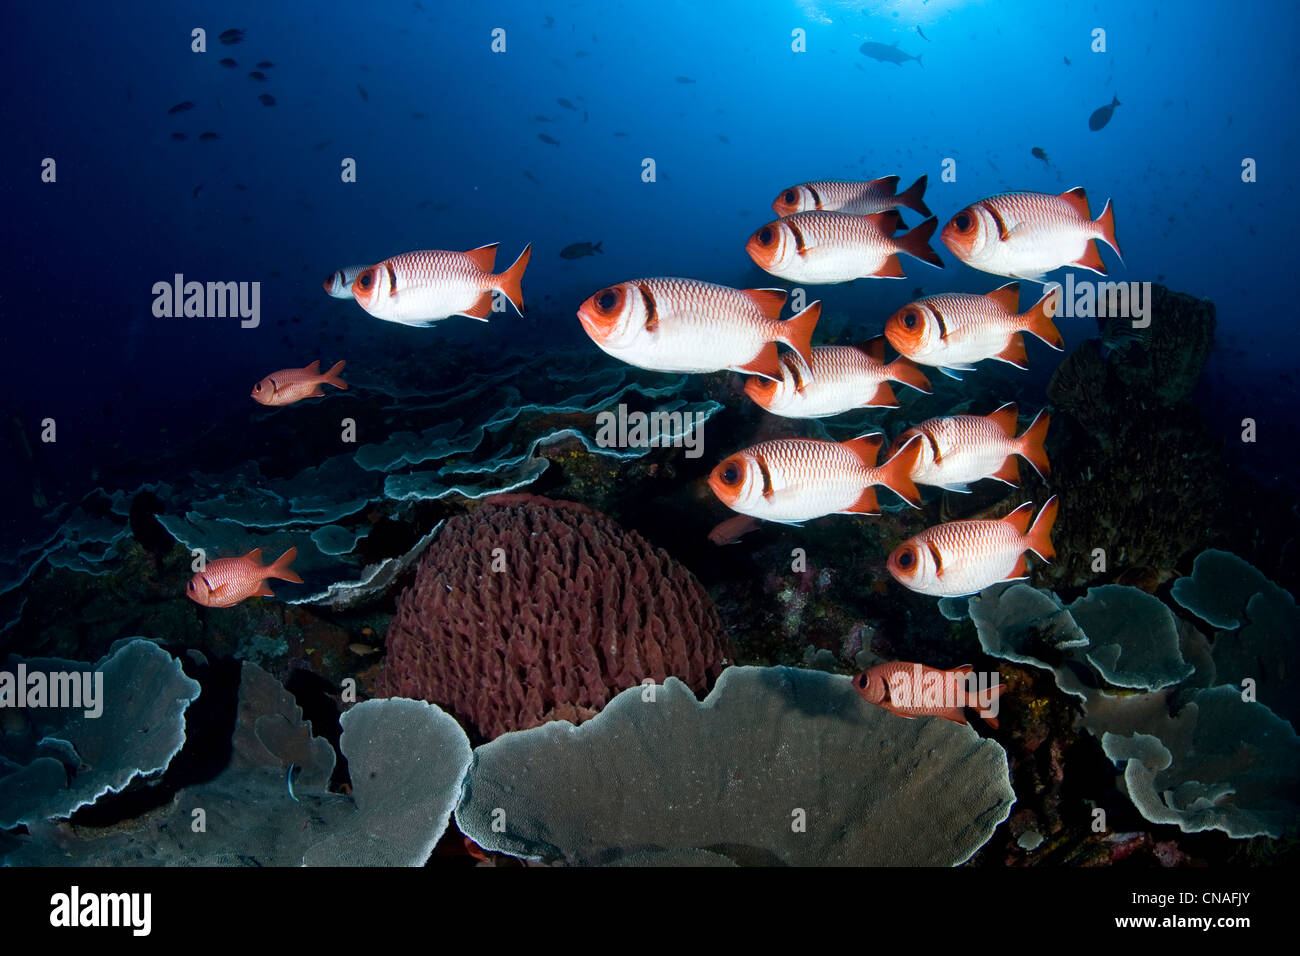 A small school of soldierfish, Myripristis sp., hover over a coral reef during the day. At night they will disperse - Stock Image